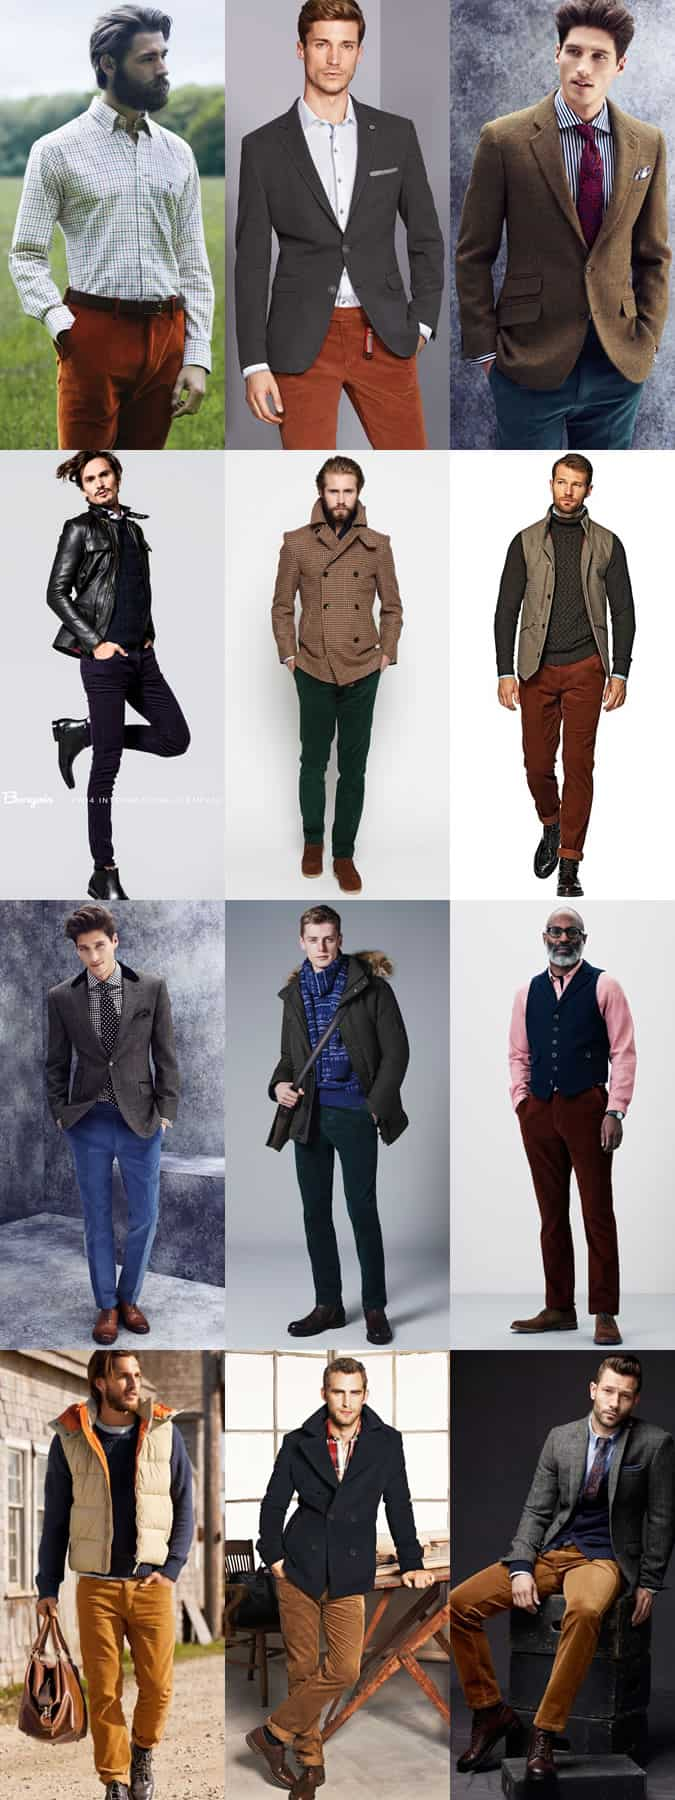 Men's Coloured Corduroy Trousers Outfit Inspiration Lookbook